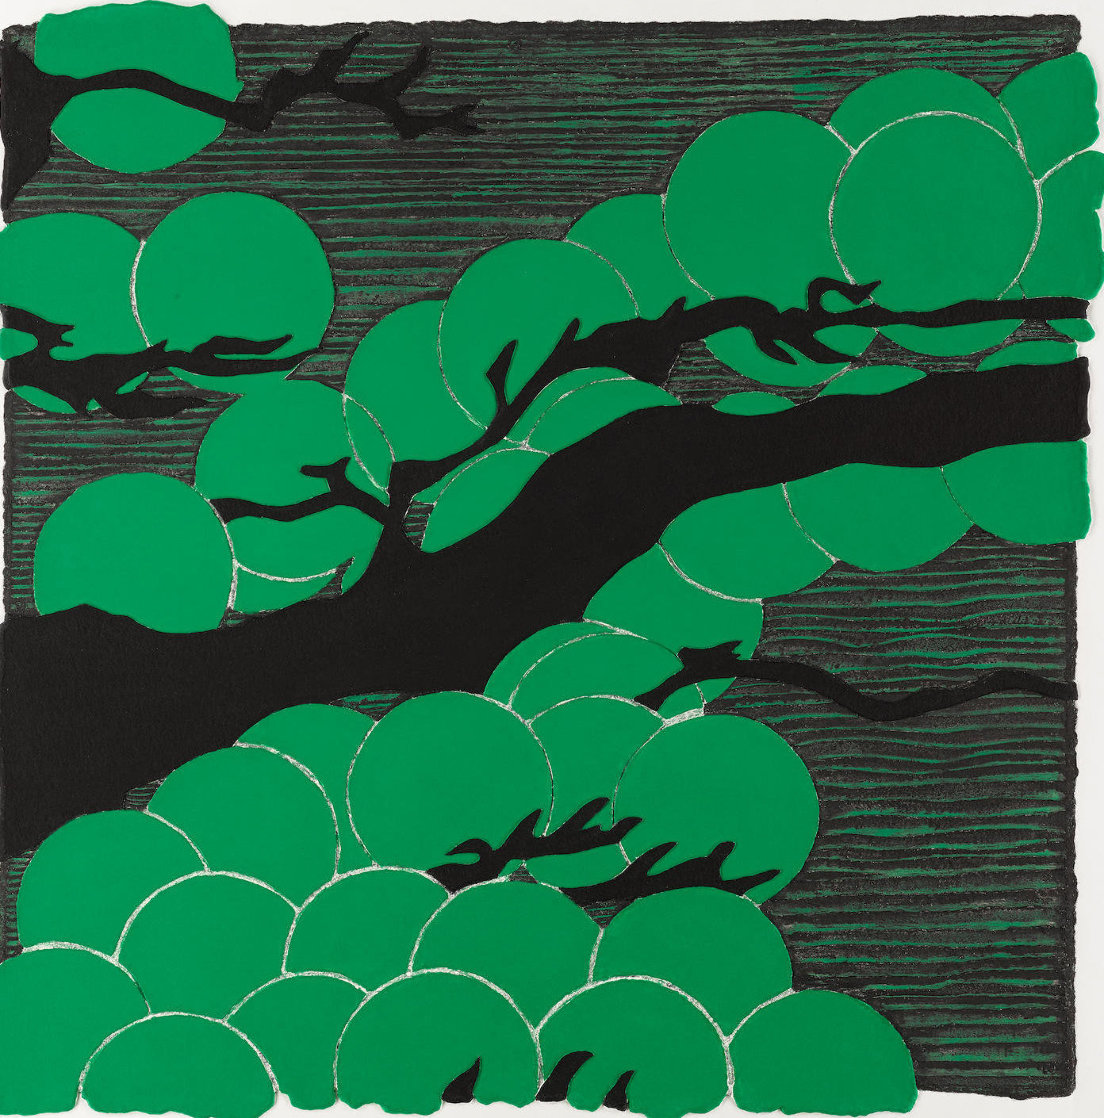 Japanese Pines Mixografia 2008 Limited Edition Print by Donald Sultan